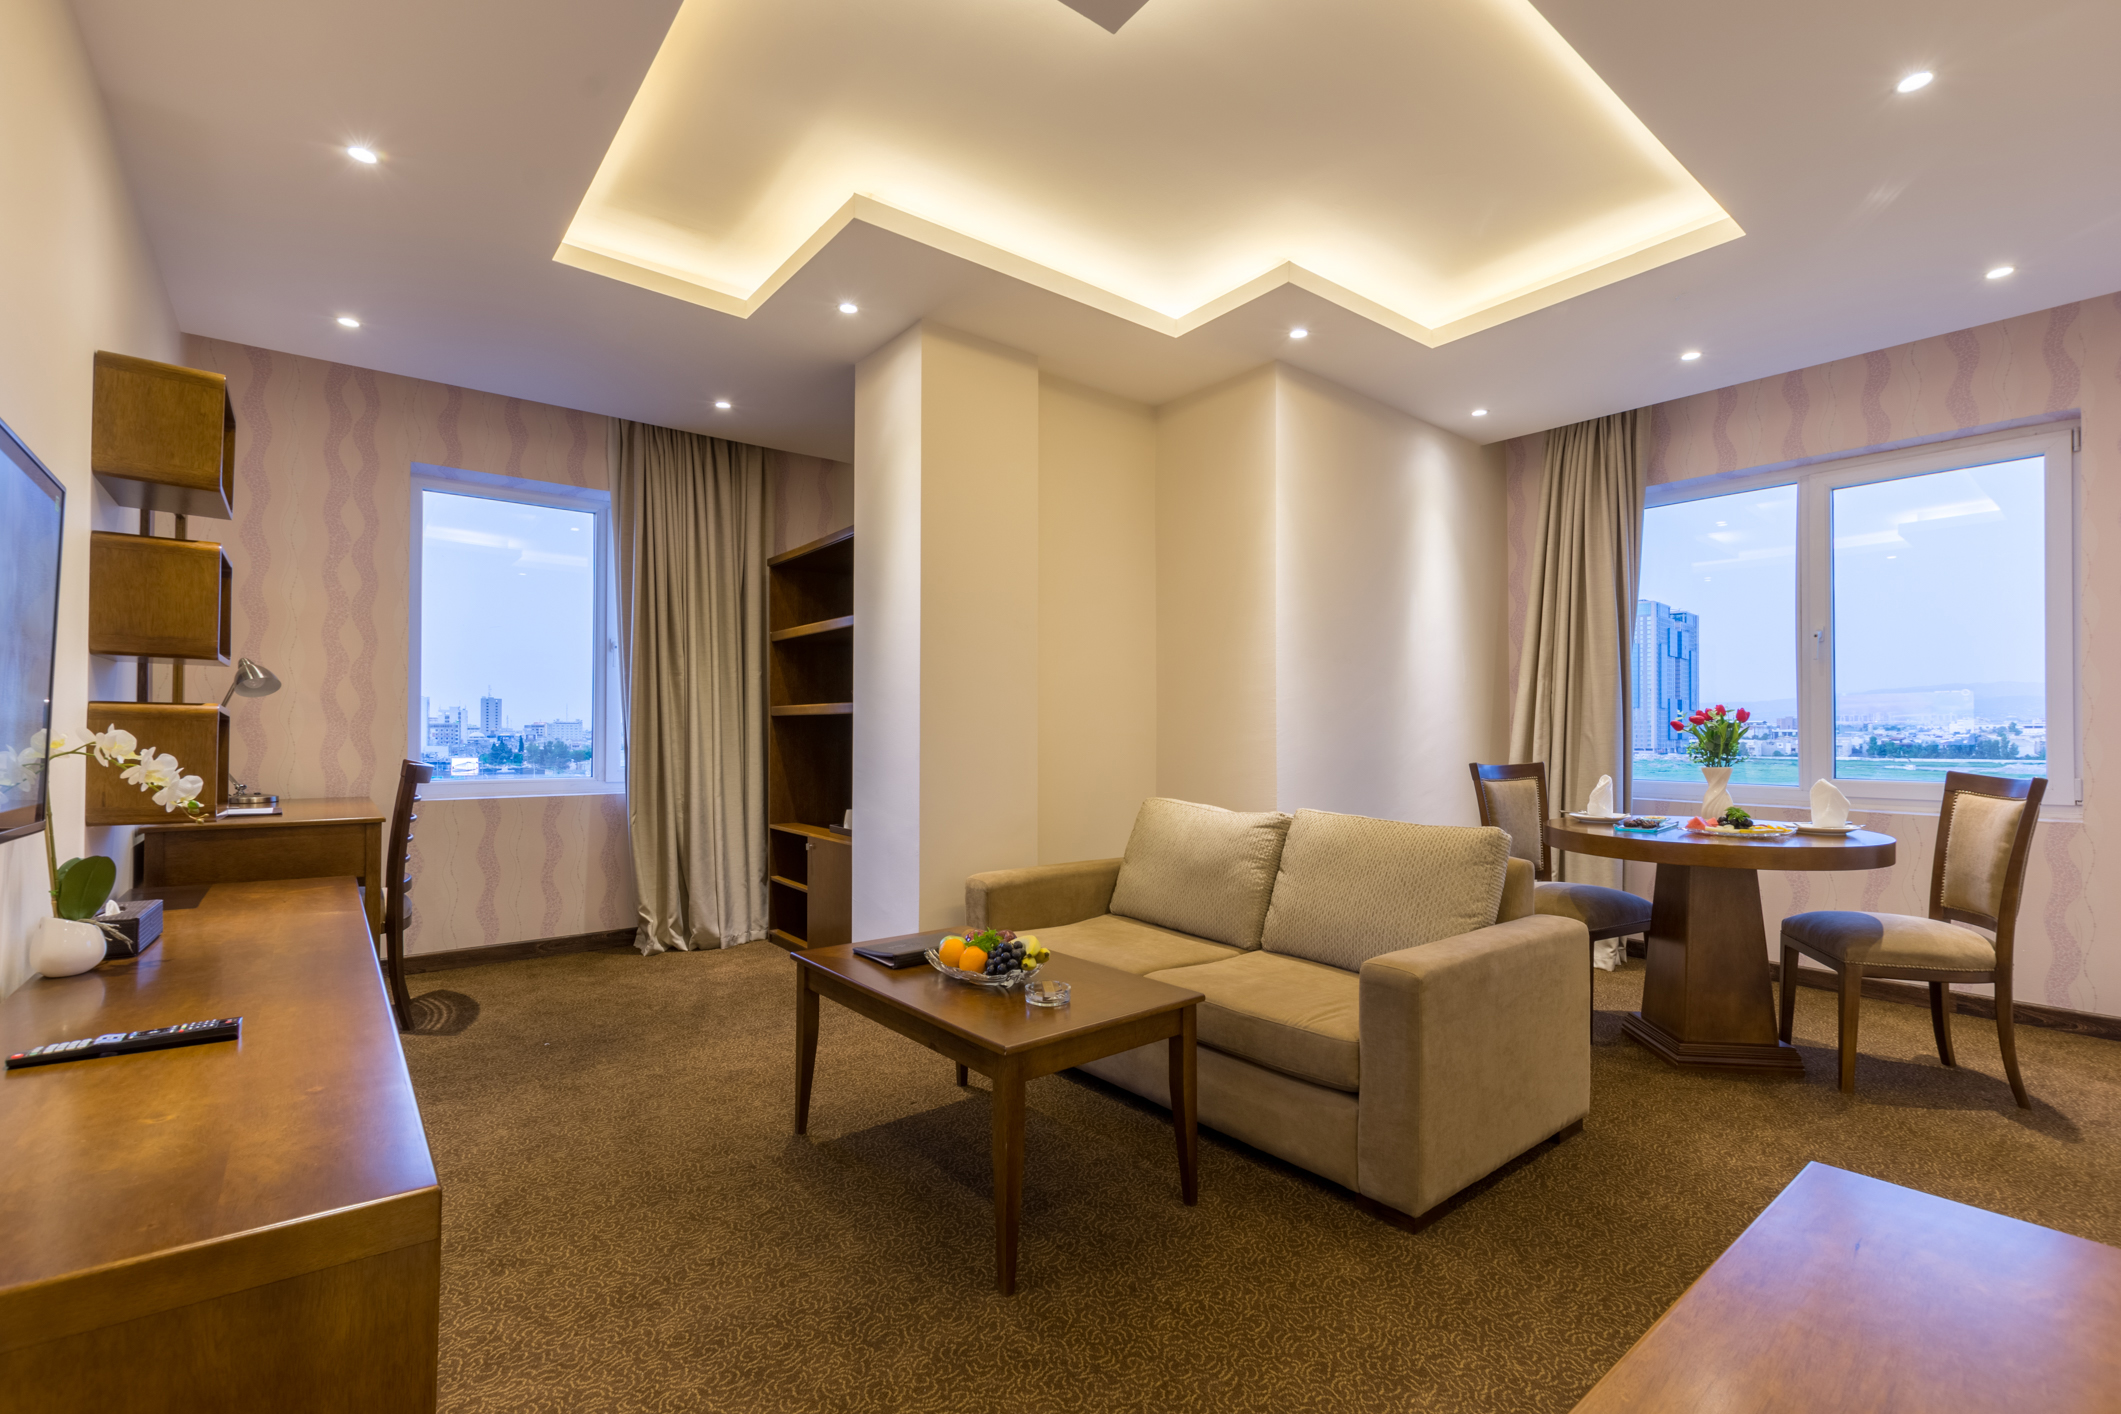 Enjoy an unforgettable stay in Erbil at our elegant hotel